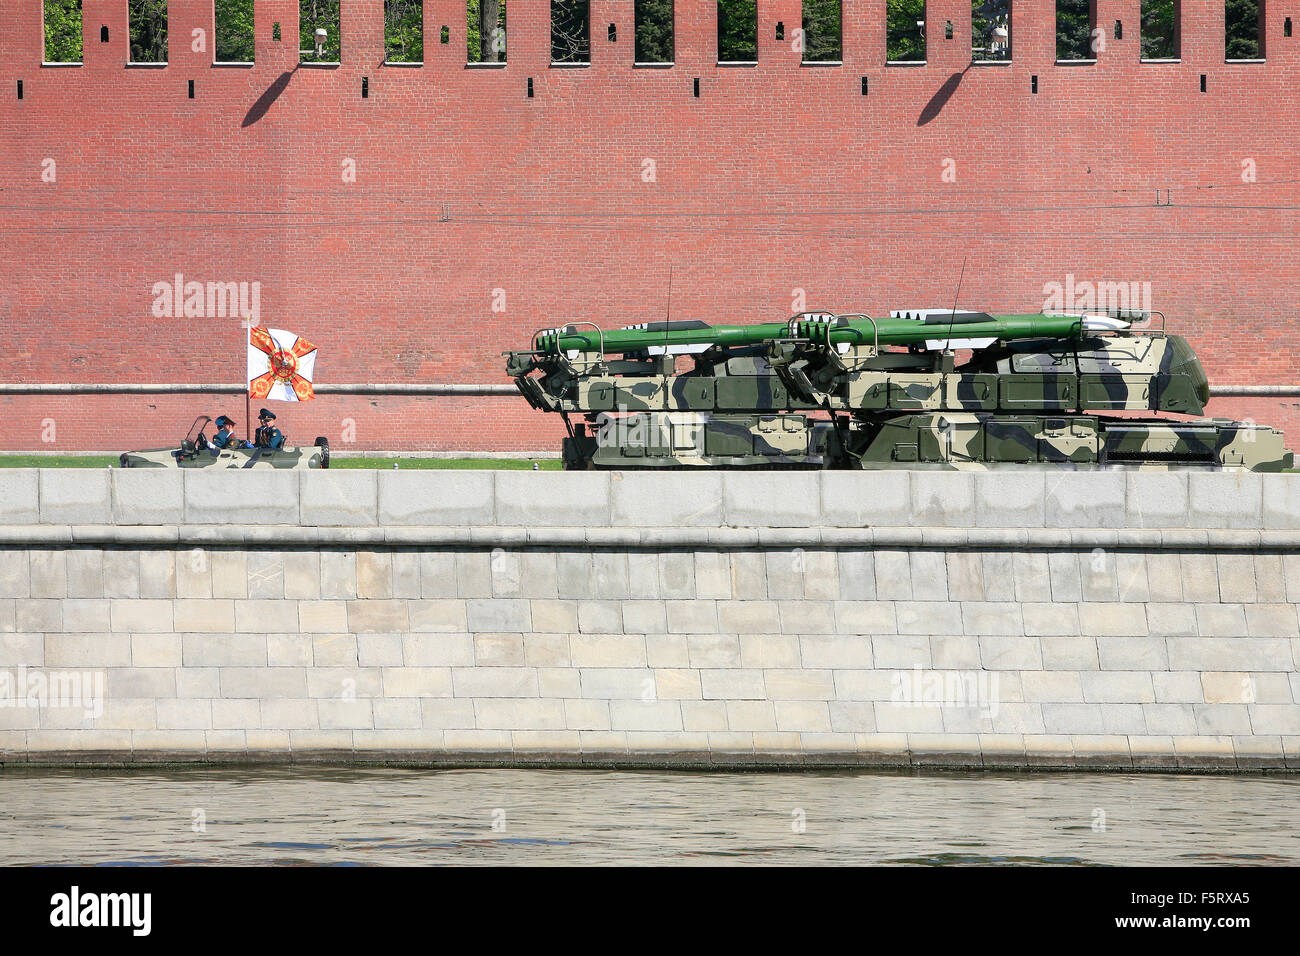 The Buk-M1-2 system during the 2009 Moscow Victory Day Parade in Moscow, Russia - Stock Image